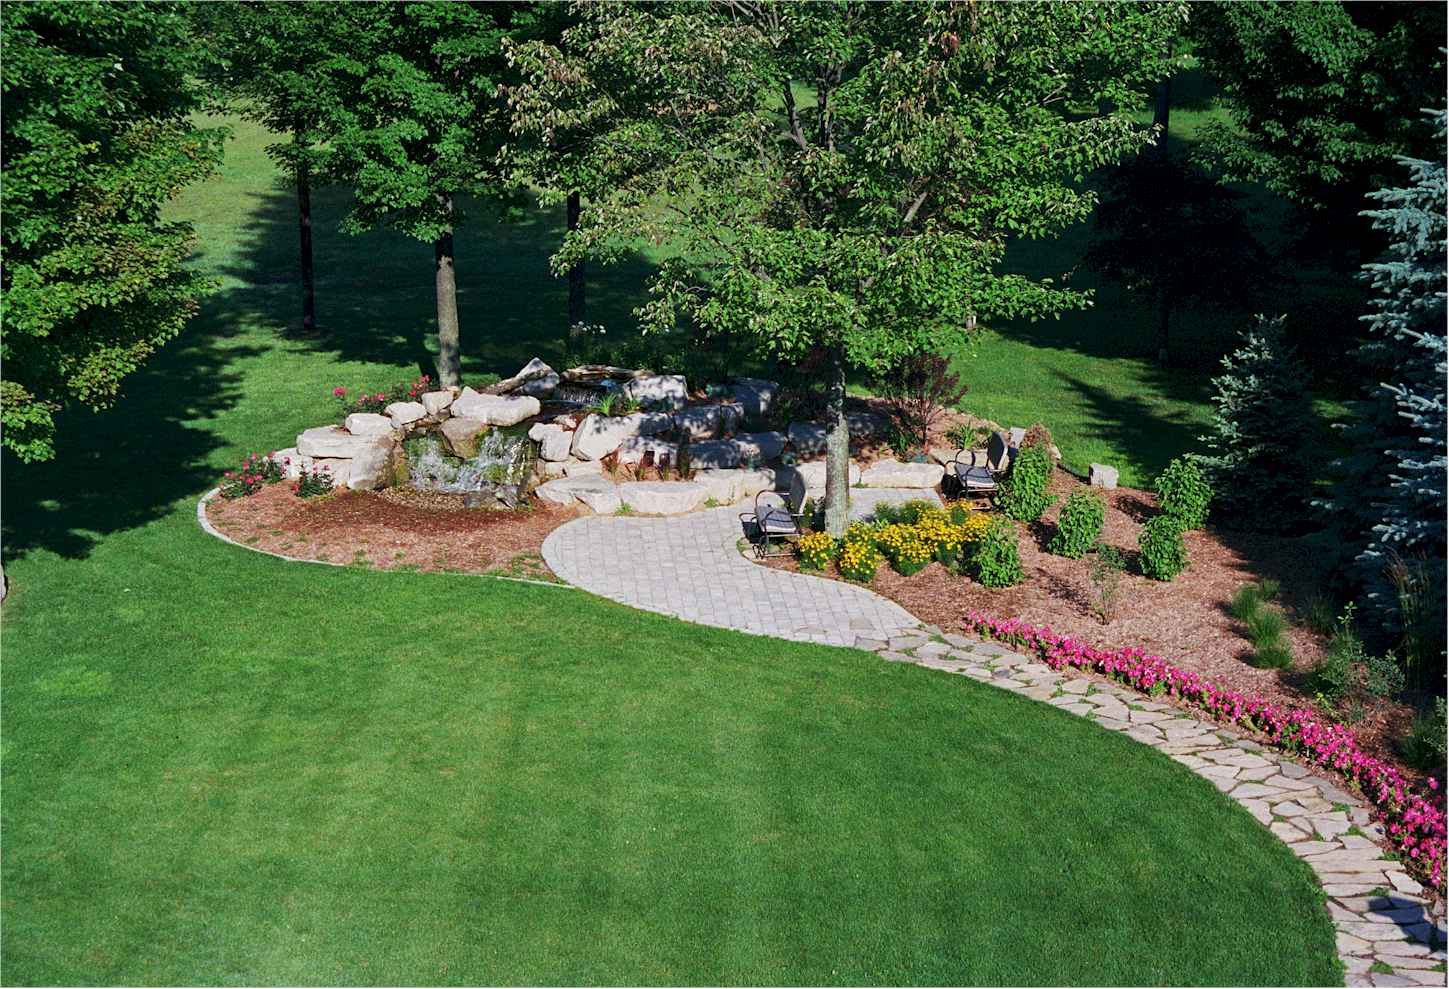 Decent Landscape Designs Your Re Landscaping Front Yard Re Landscaping My Yard Ideas outdoor Re Landscaping Yard